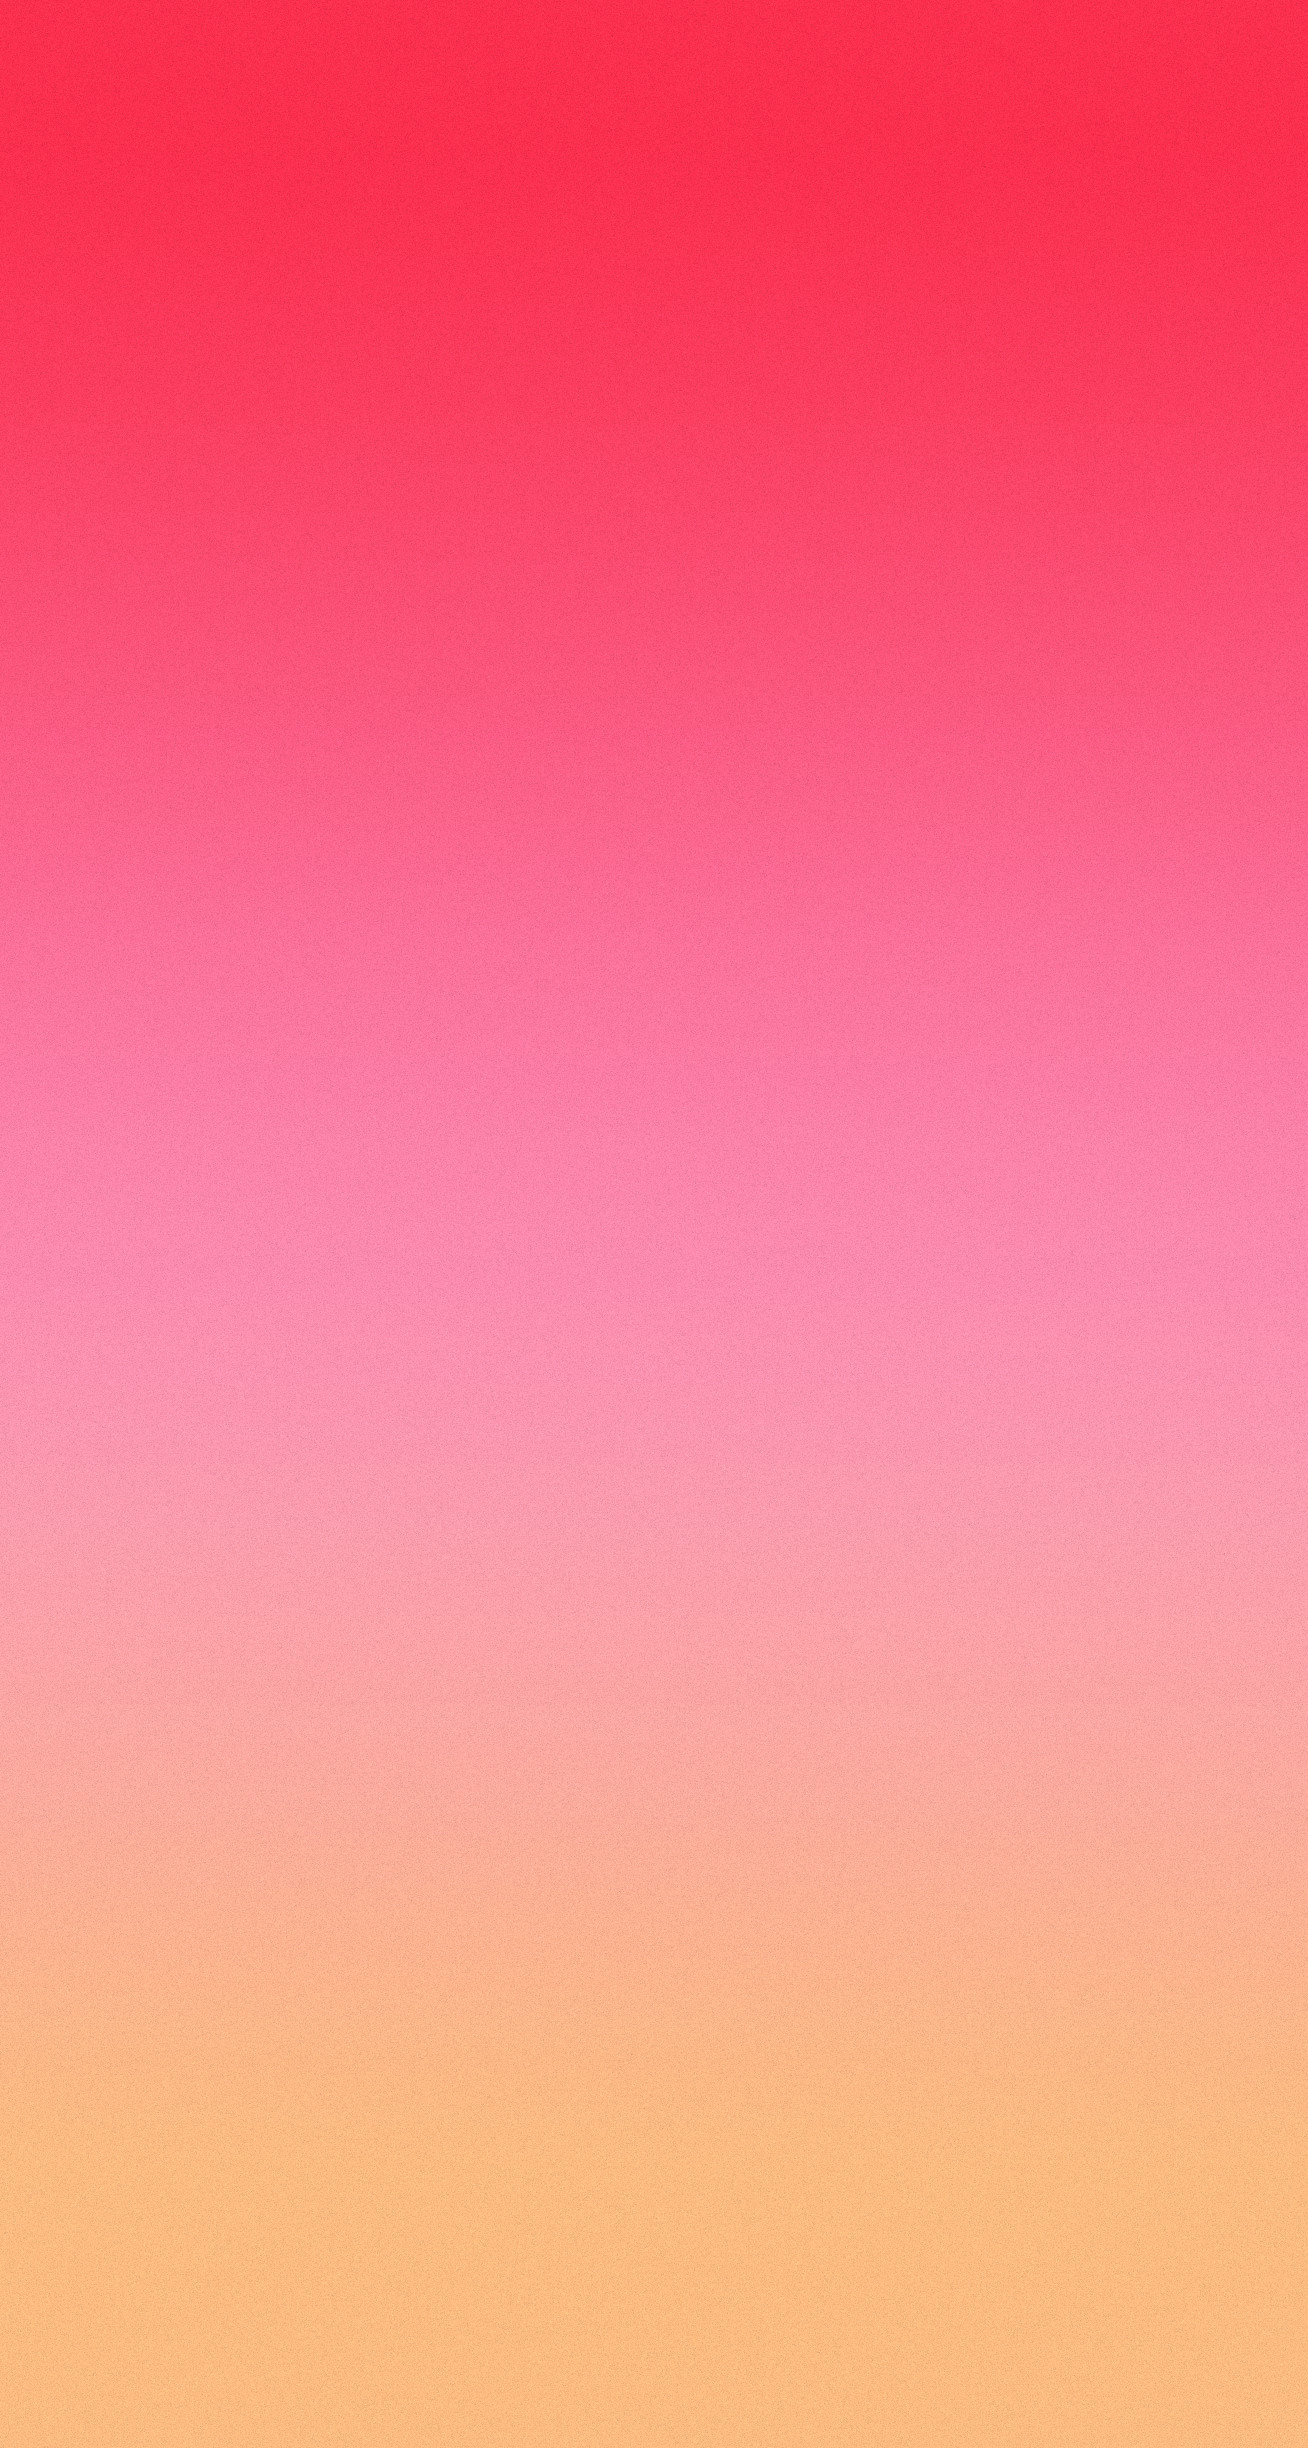 Pink Ombre Wallpaper 60 Images